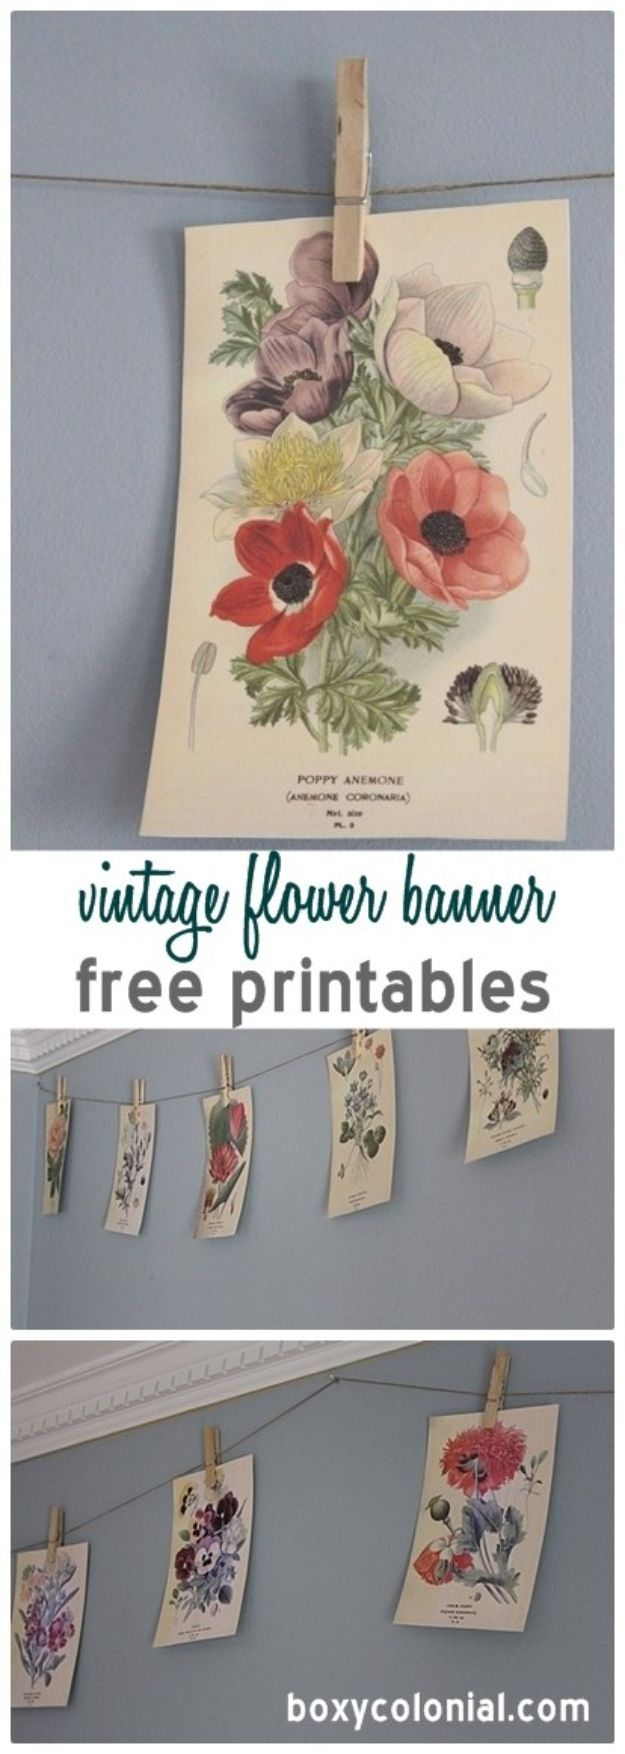 Free Printables For Your Walls - Vintage Flower banner Free Printables - Easy Canvas Ideas With Free Downloadable Artwork and Quote Sayings - Best Free Prints for Wall Art and Picture to Print for Home and Bedroom Decor - Signs for the Home, Organization, Office - Quotes for Bedroom and Kitchens, Vintage Bathroom Pictures - Downloadable Printable for Kids - DIY and Crafts by DIY JOY #wallart #freeprintables #diyideas #diyart #walldecor #diyhomedecor http://diyjoy.com/best-free-printables-wall-art